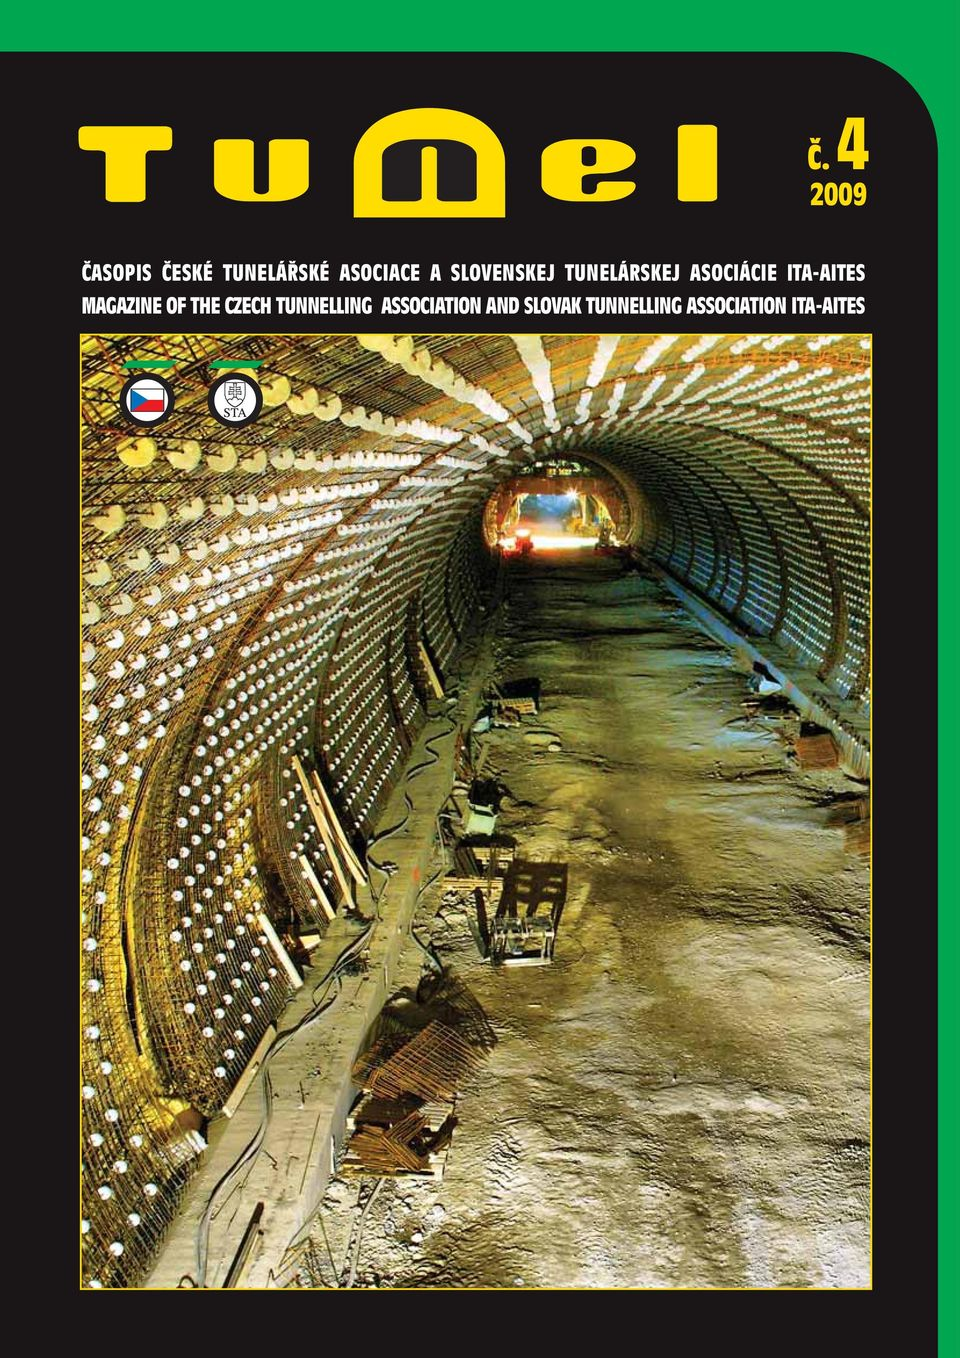 ITA-AITES MAGAZINE OF THE CZECH TUNNELLING